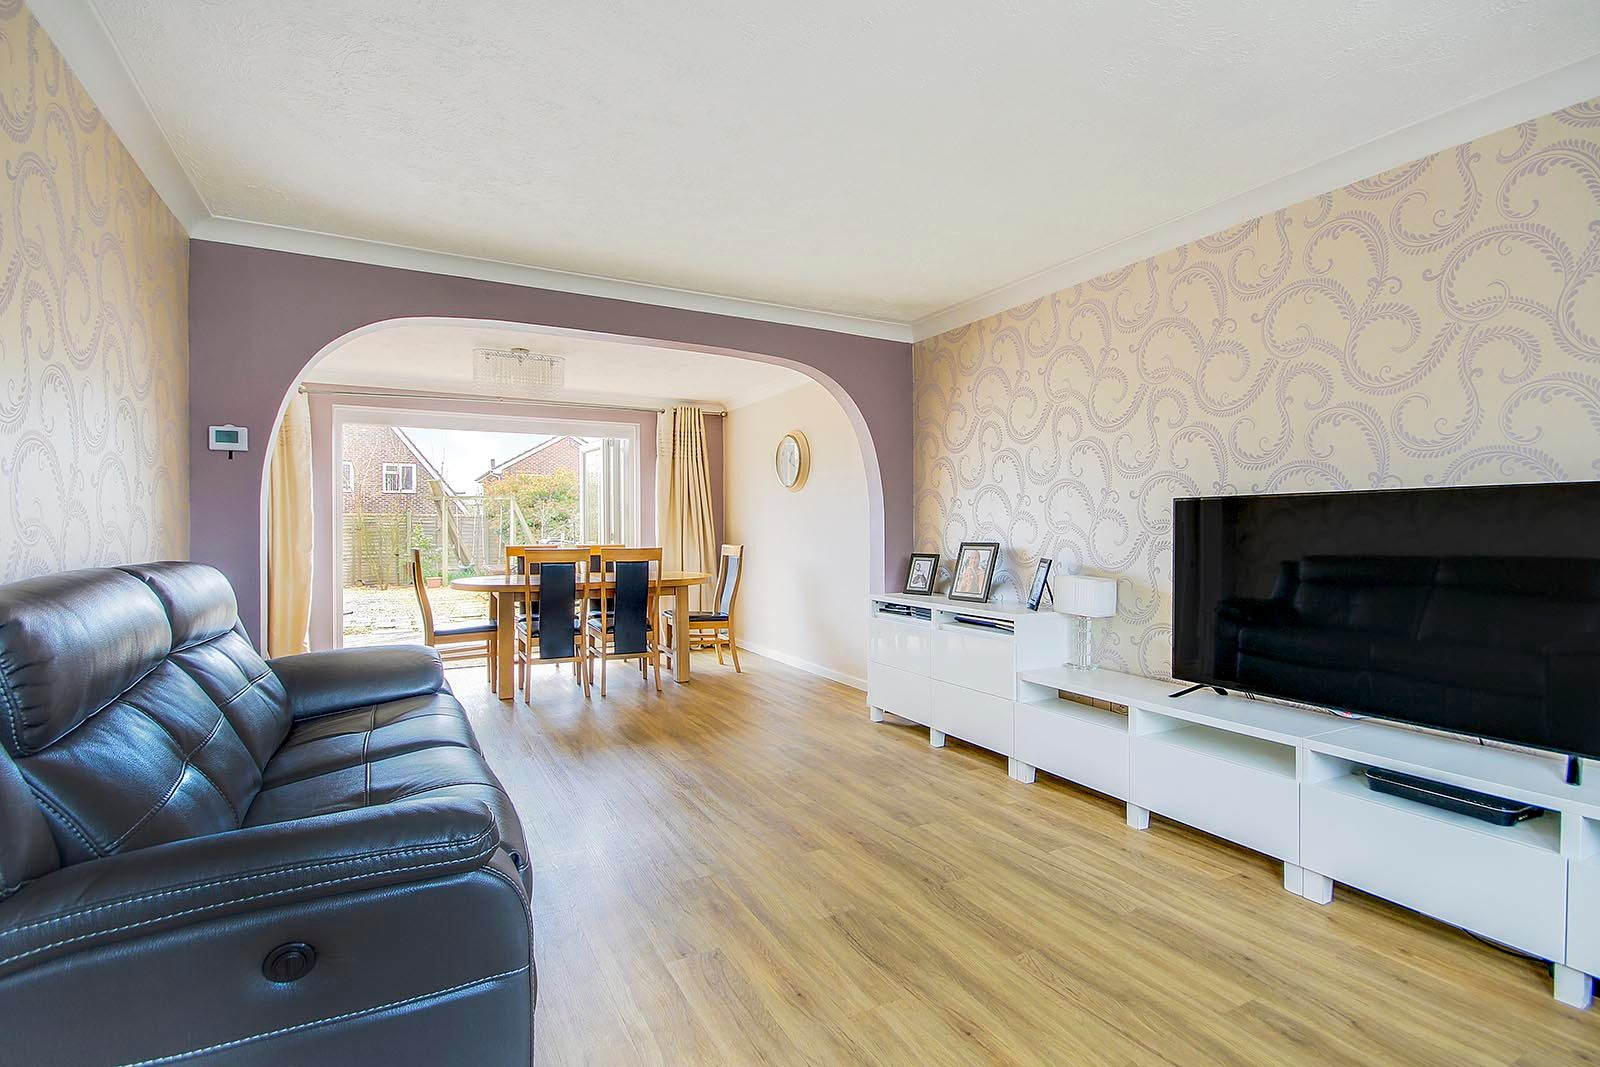 3 bed house for sale in Woodlands Close (COMP AUG 19) 3